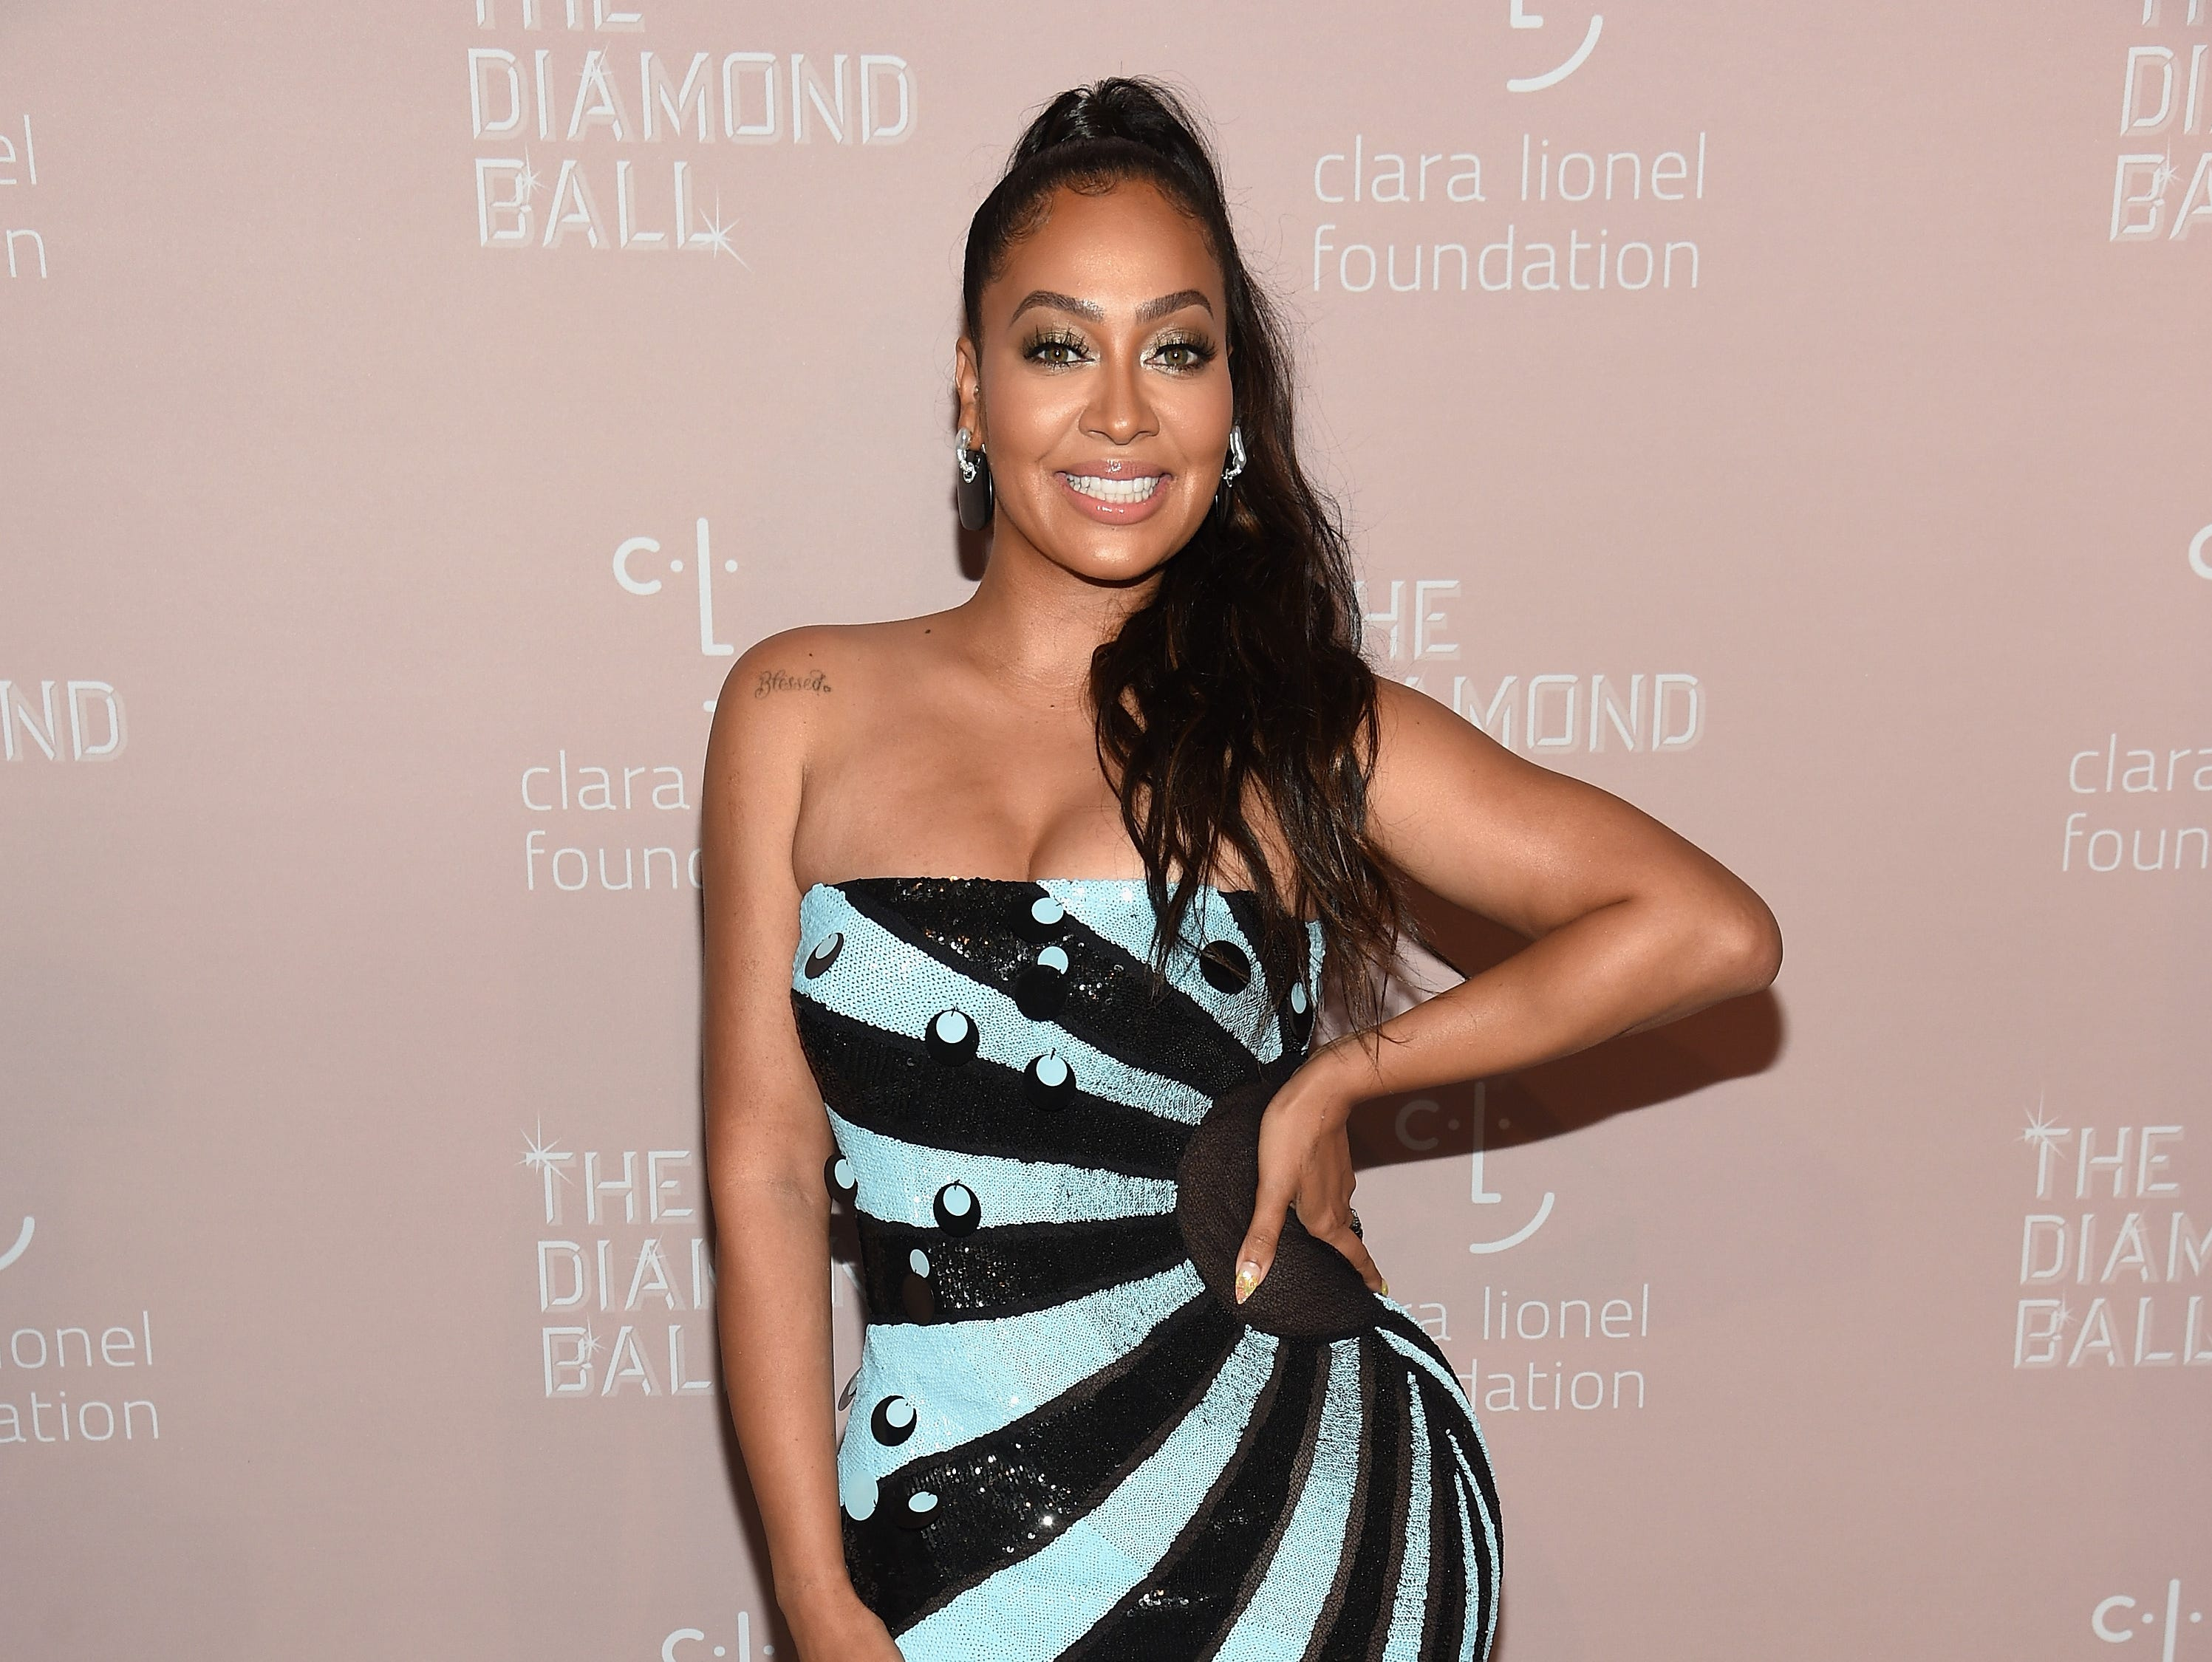 NEW YORK, NY - SEPTEMBER 13: La La Anthony attends Rihanna's 4th Annual Diamond Ball benefitting The Clara Lionel Foundation at Cipriani Wall Street on September 13, 2018 in New York City.  (Photo by Dimitrios Kambouris/Getty Images for Diamond Ball) ORG XMIT: 775197456 ORIG FILE ID: 1032932944